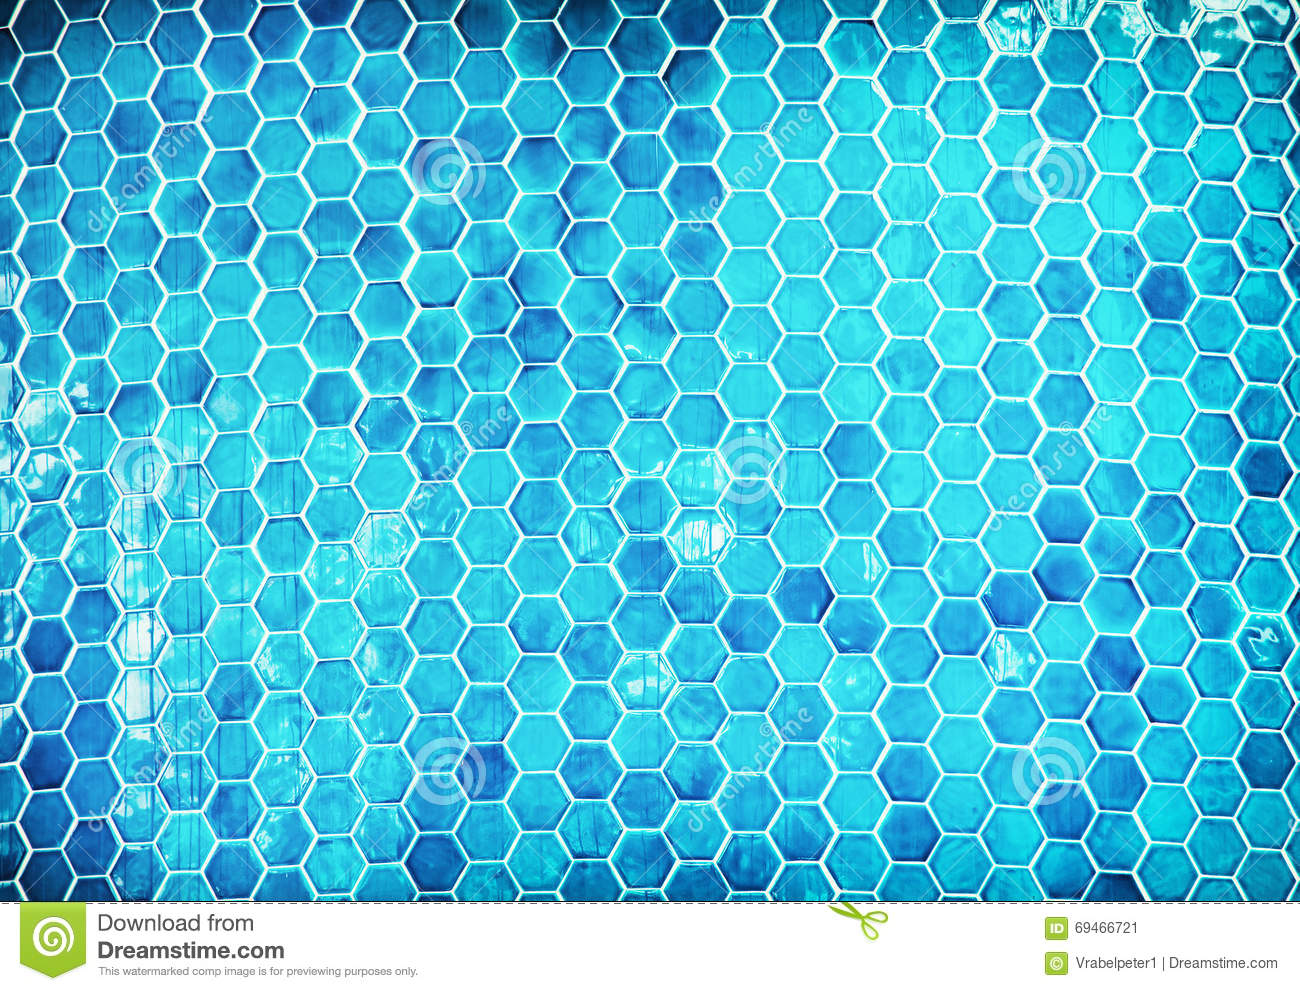 Swimming Pool Background blue mosaic swimming pool background stock photo - image: 69466721